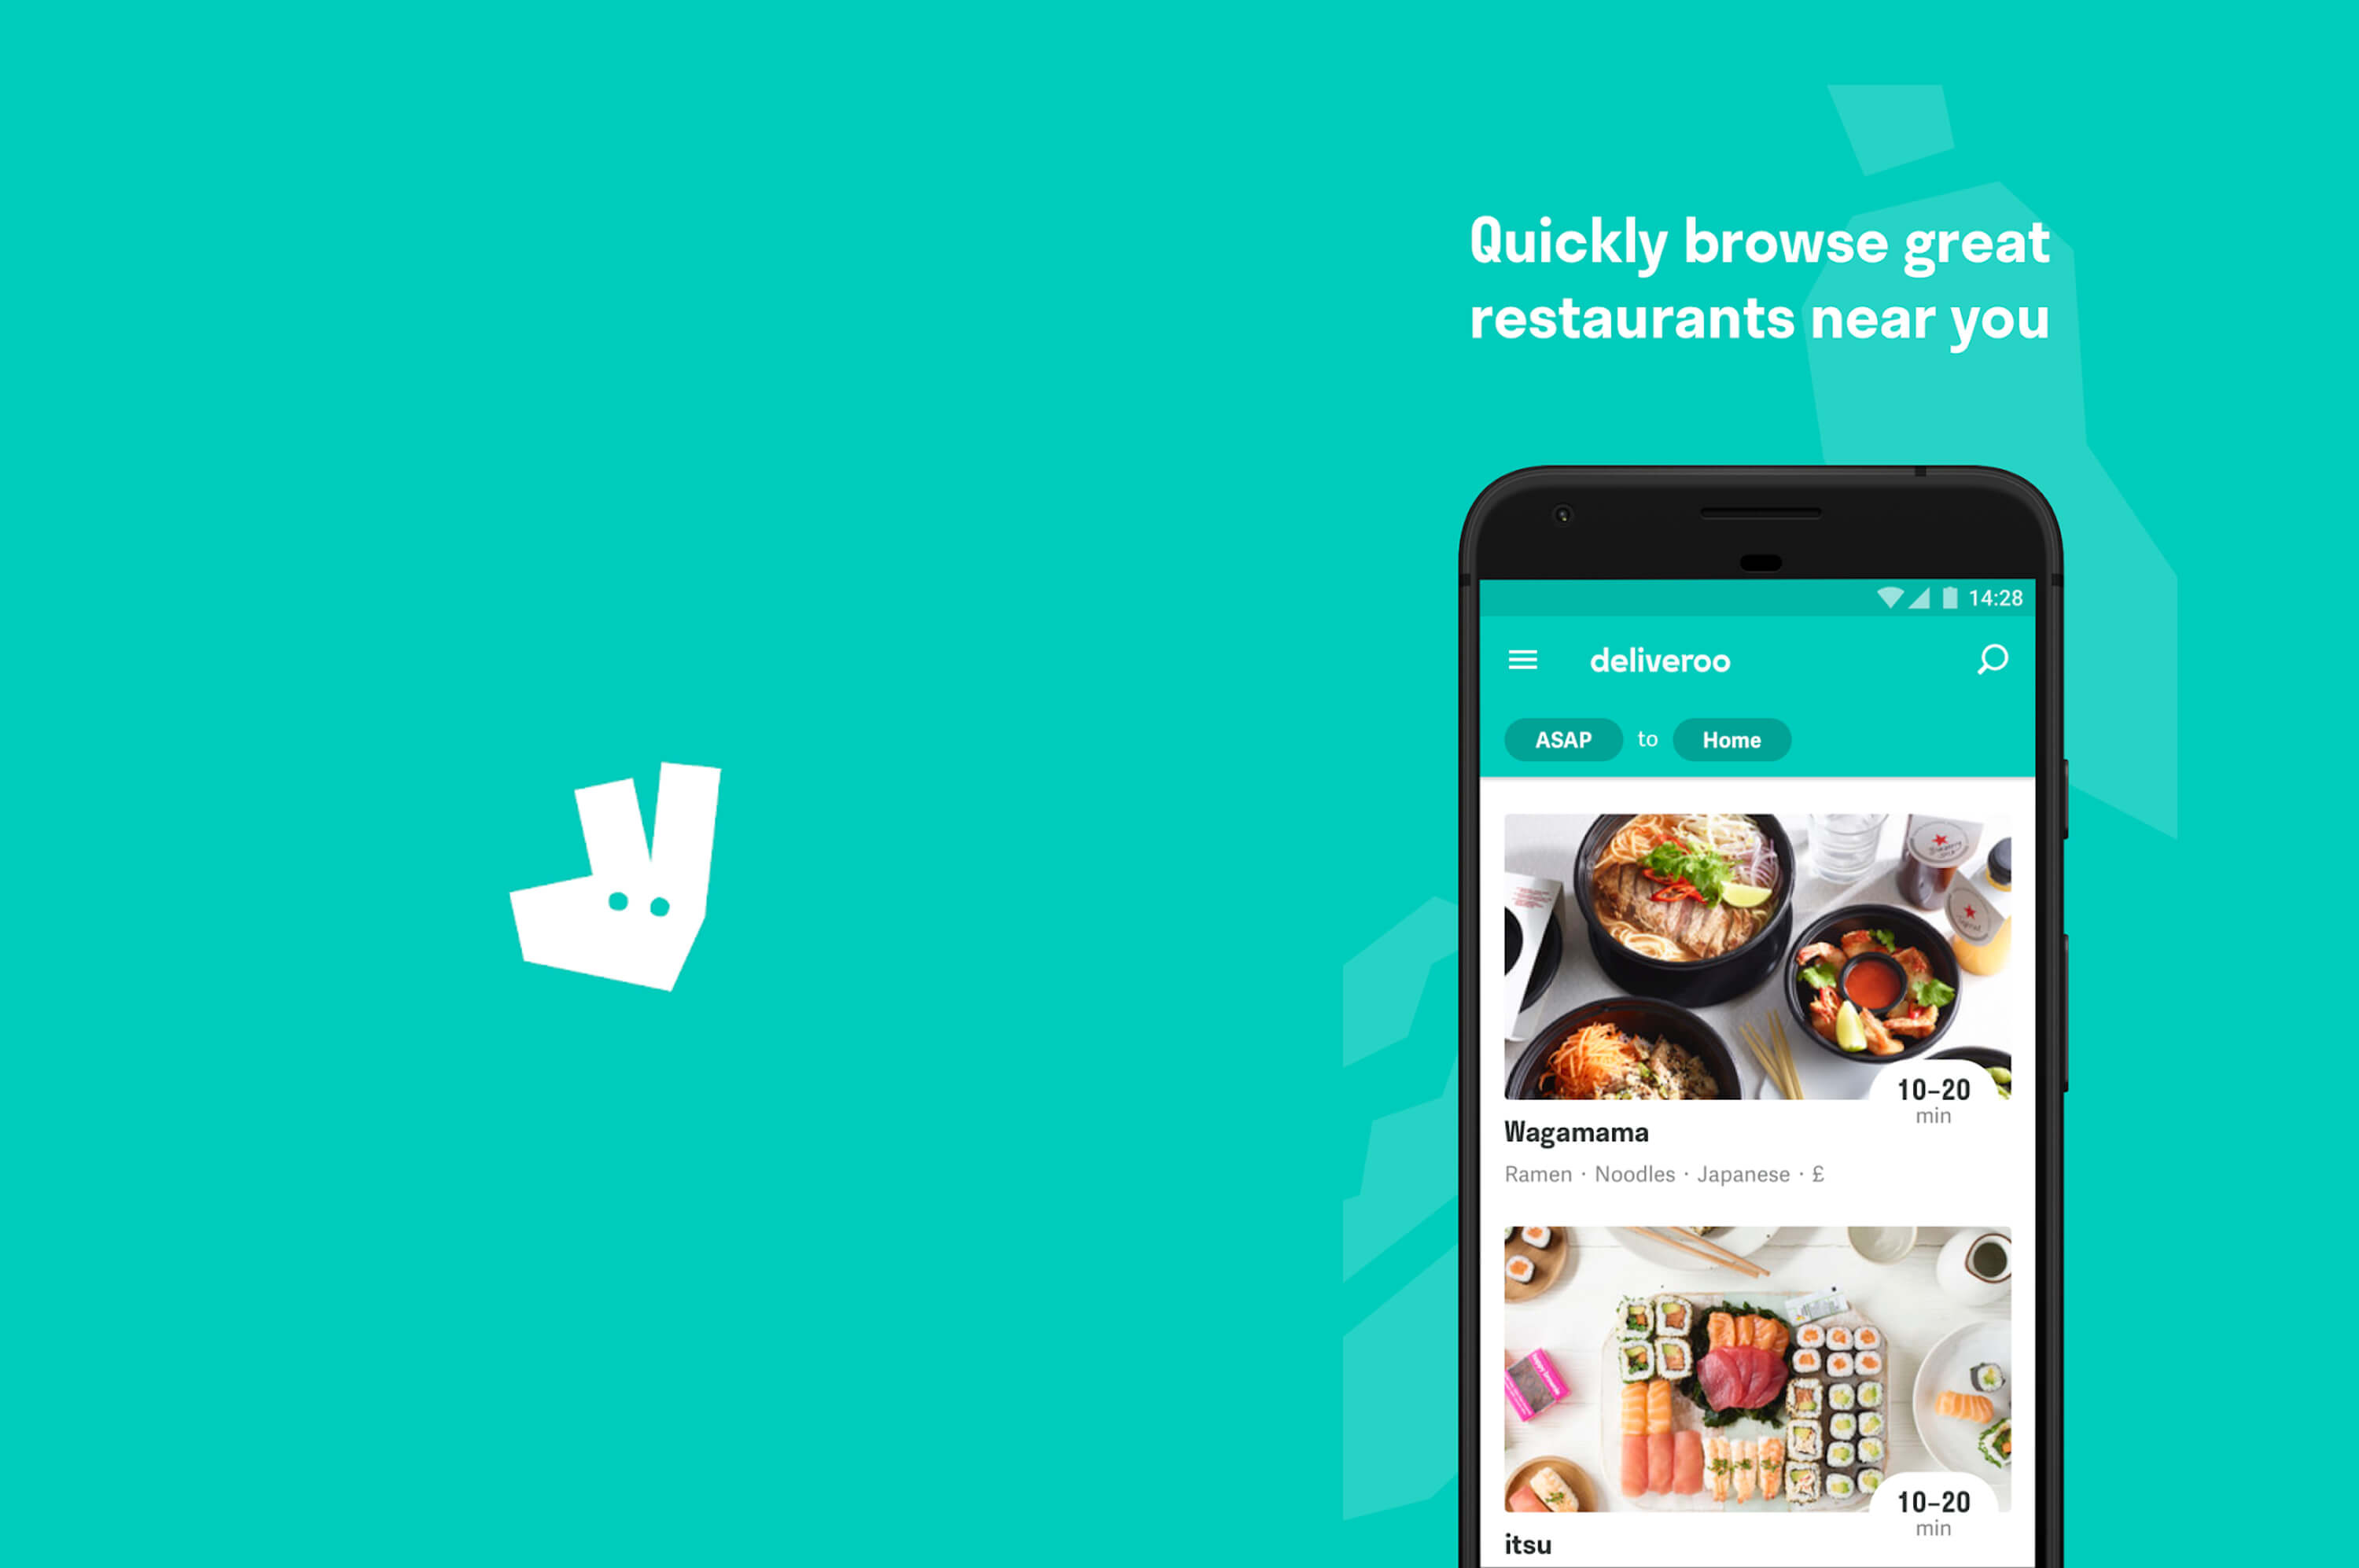 deliveroo app opened in a black smartphone